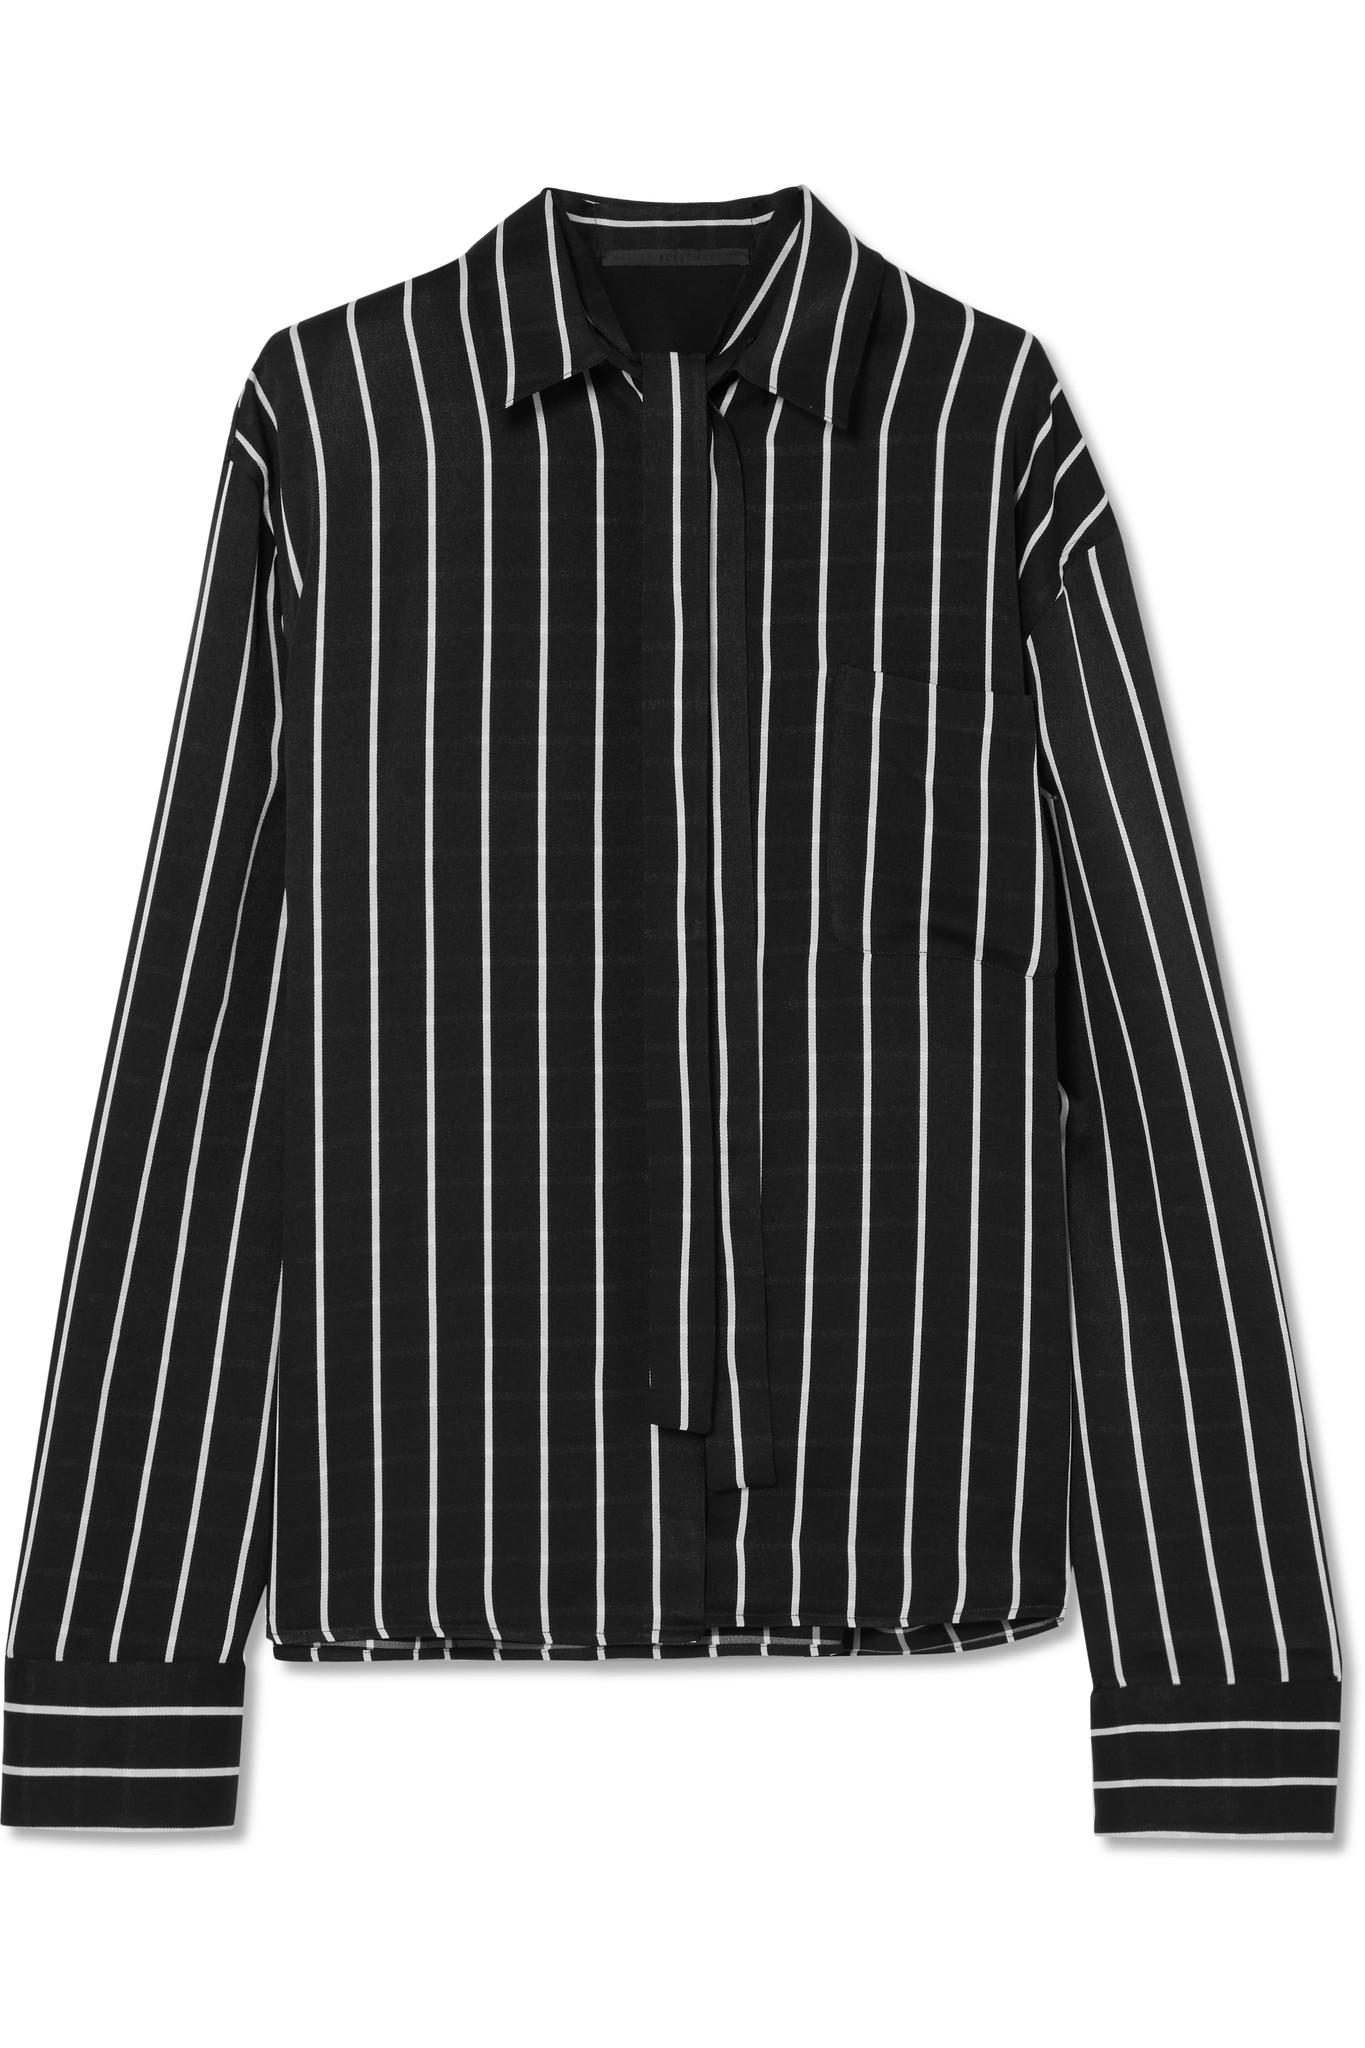 Striped satin shirt - Black Haider Ackermann Clearance Best Seller Cheap Sale Cost Looking For Discount Professional NeUX5m